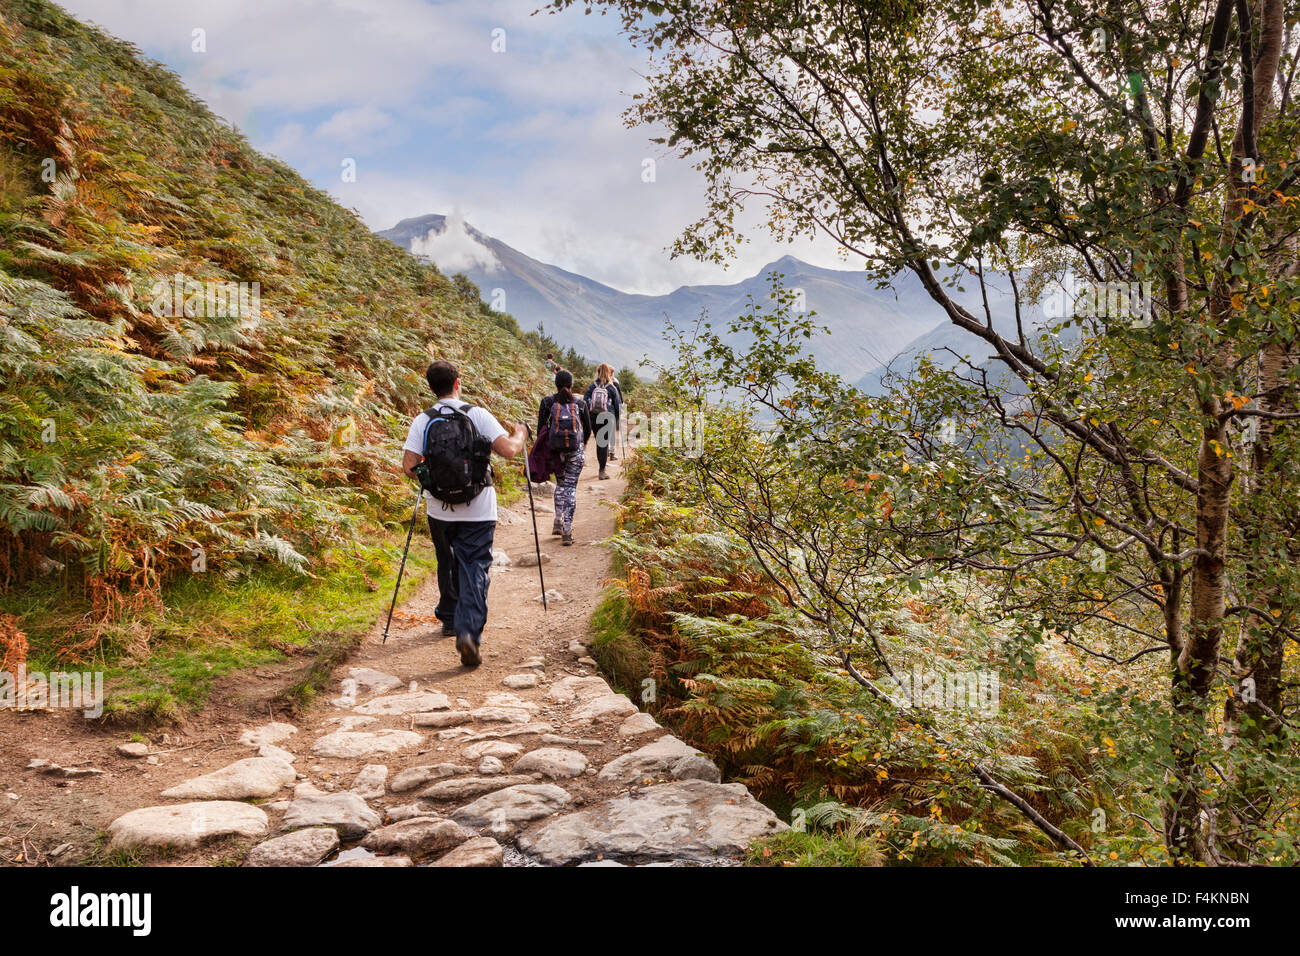 Hikers on the Ben Nevis path with walking poles, Highland, Scotland, UK - Stock Image